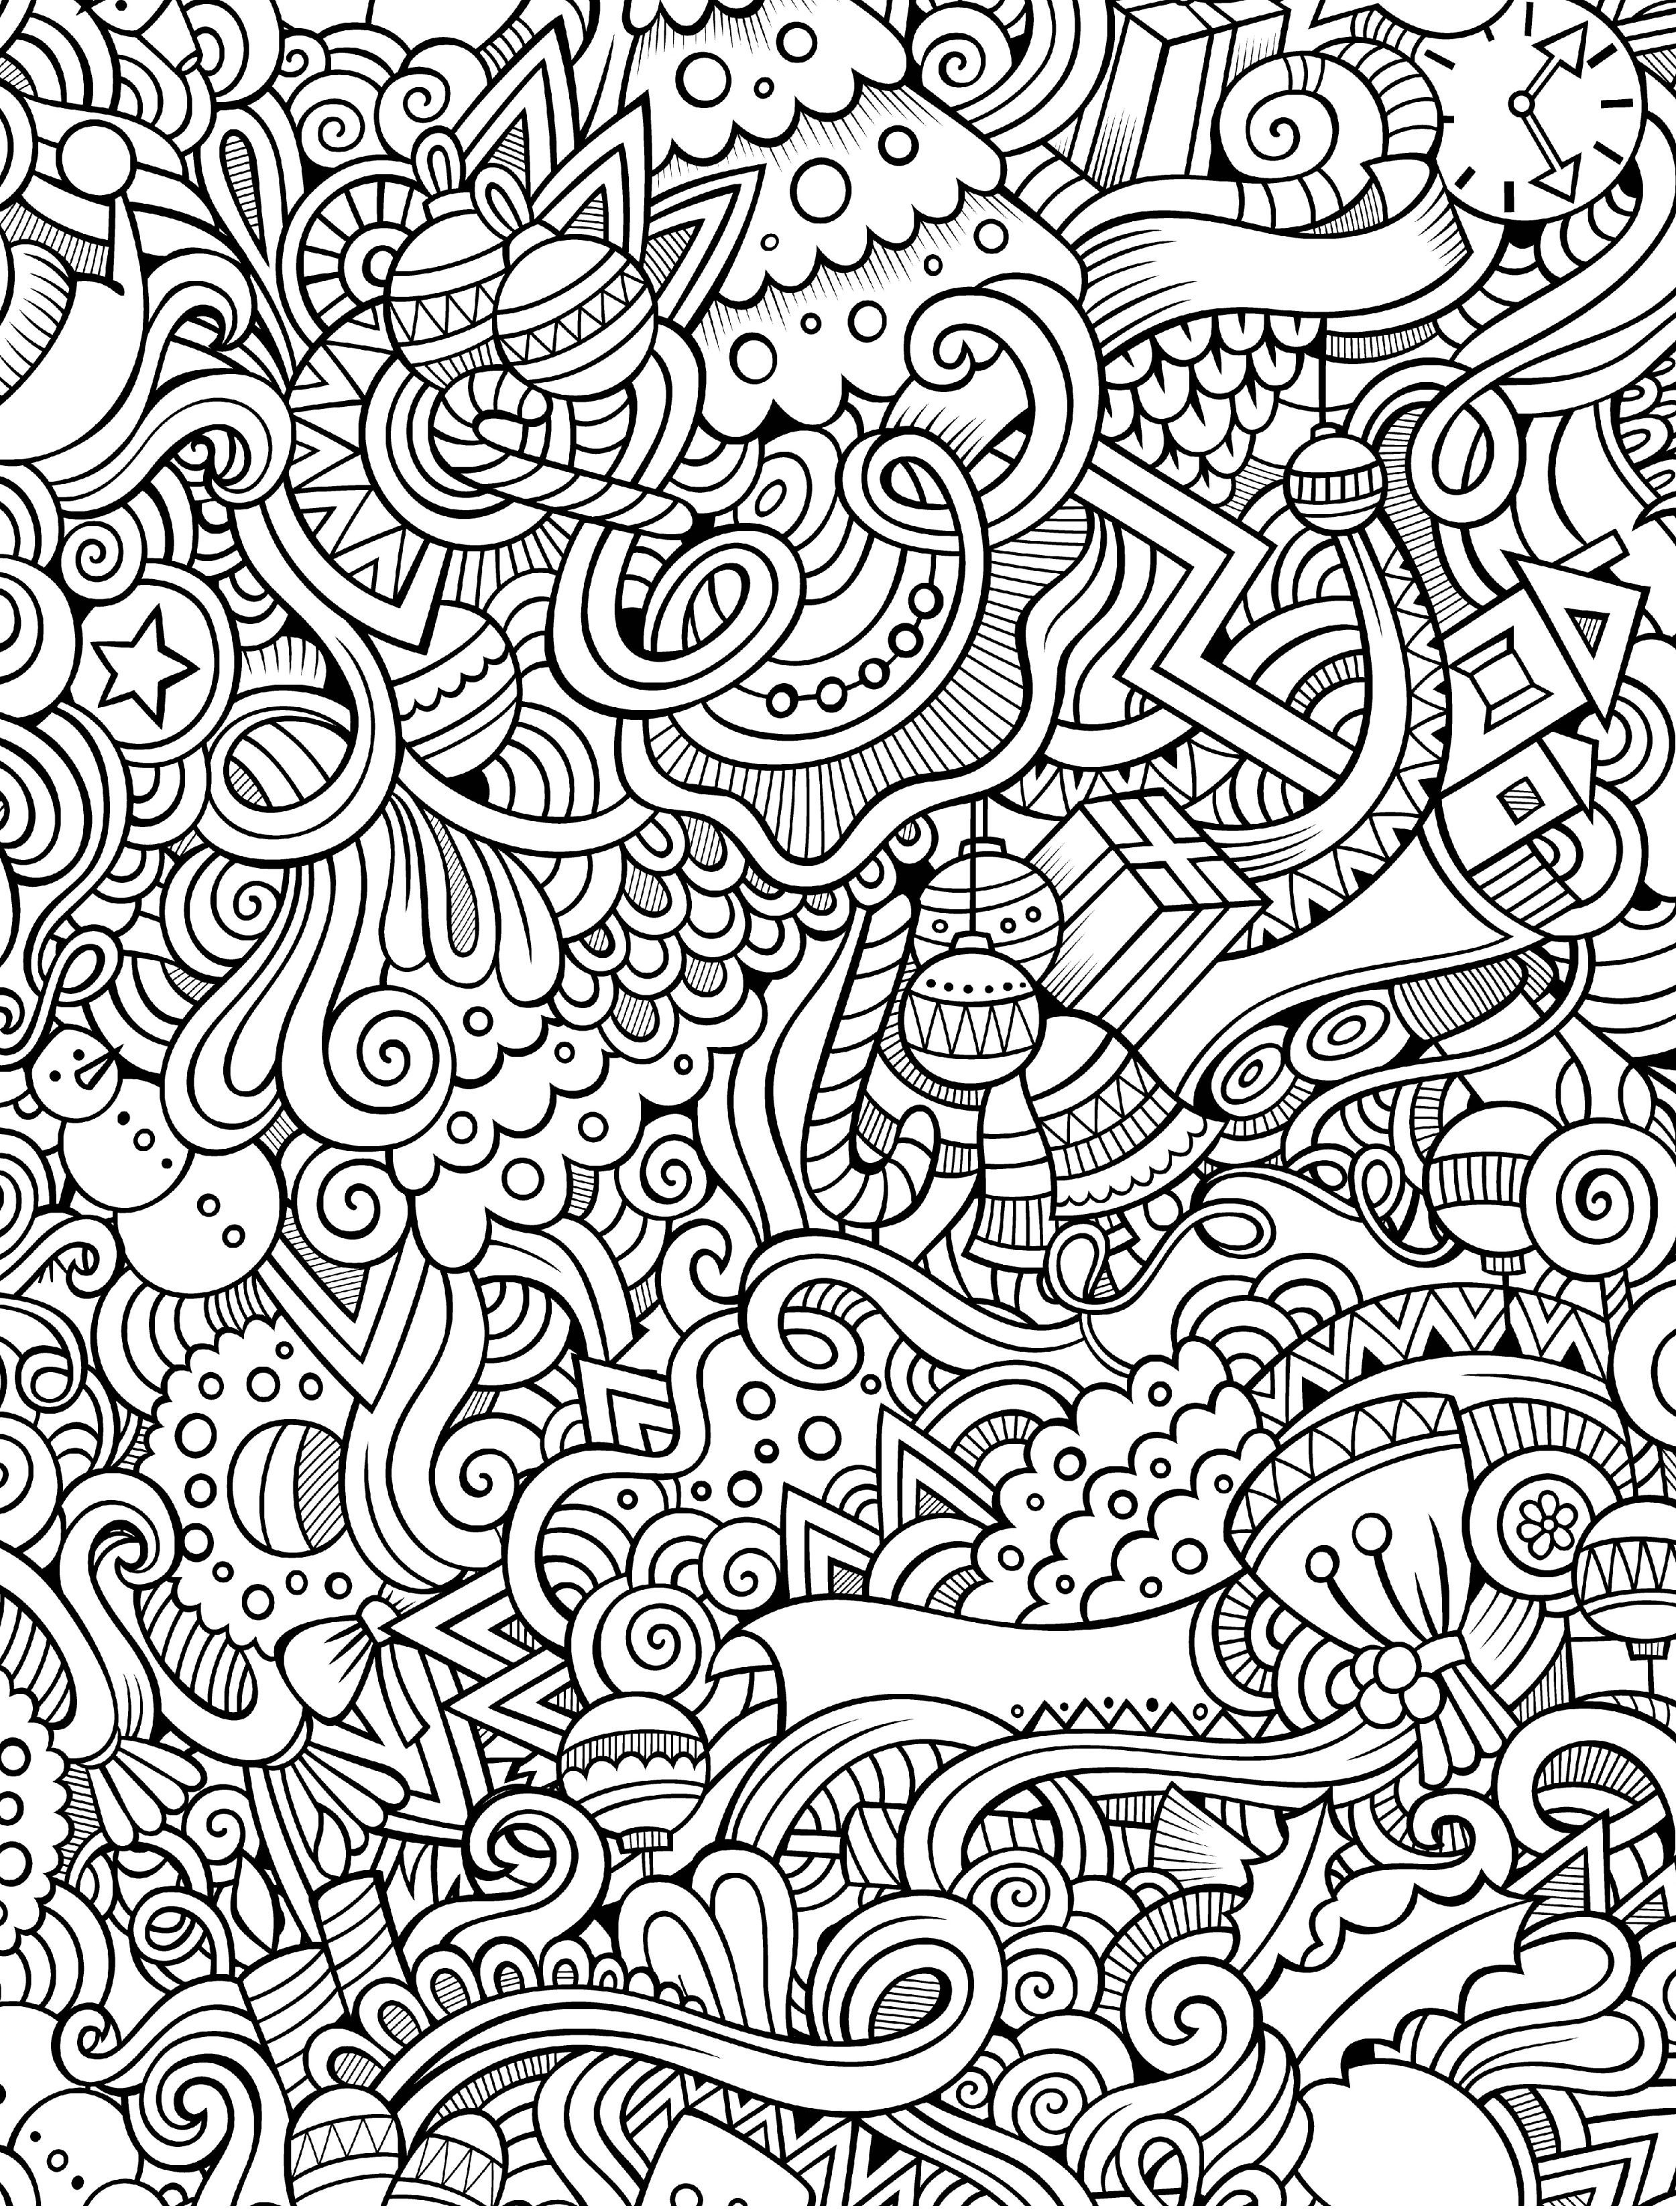 trippy coloring pages trippy coloring pages for adult visual arts ideas trippy pages coloring